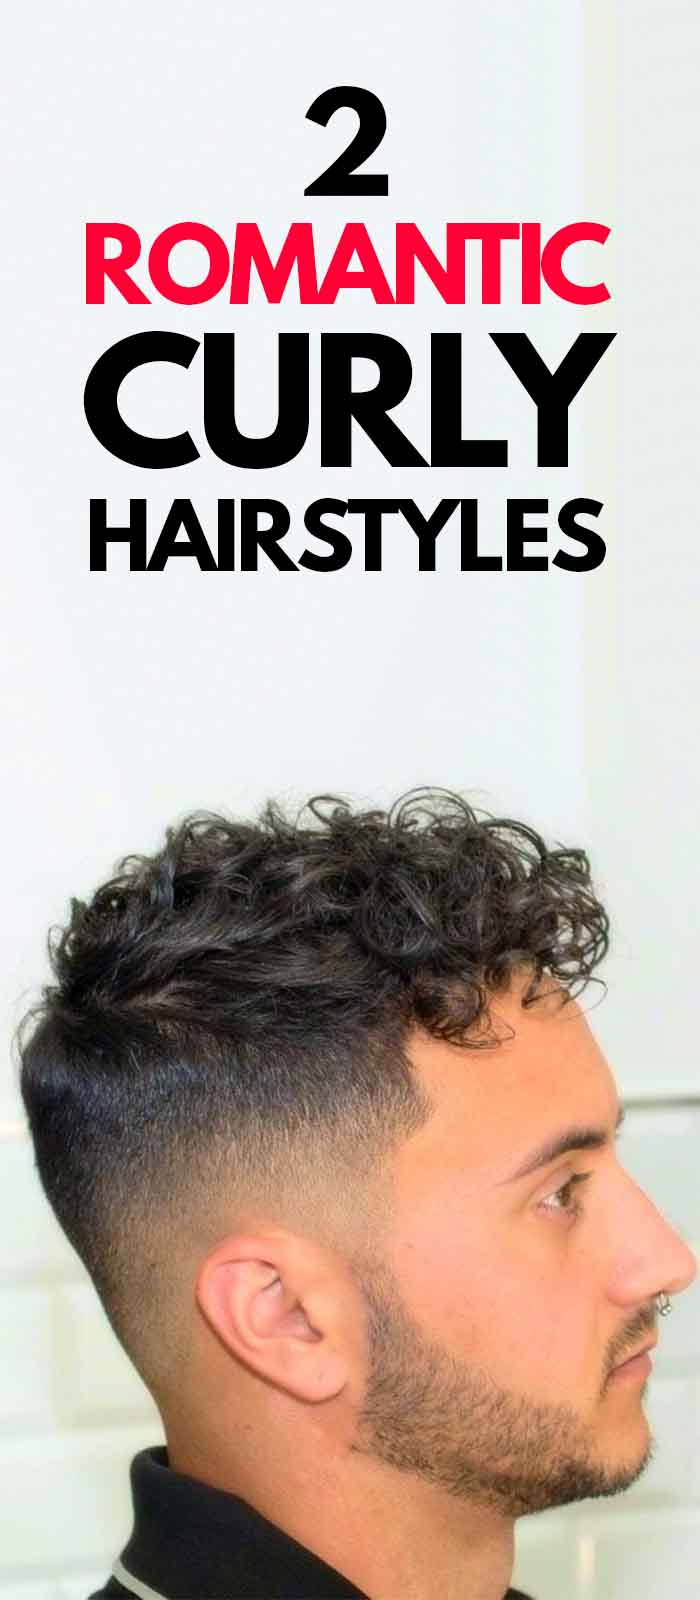 Curly Hairstyle for men 2019.